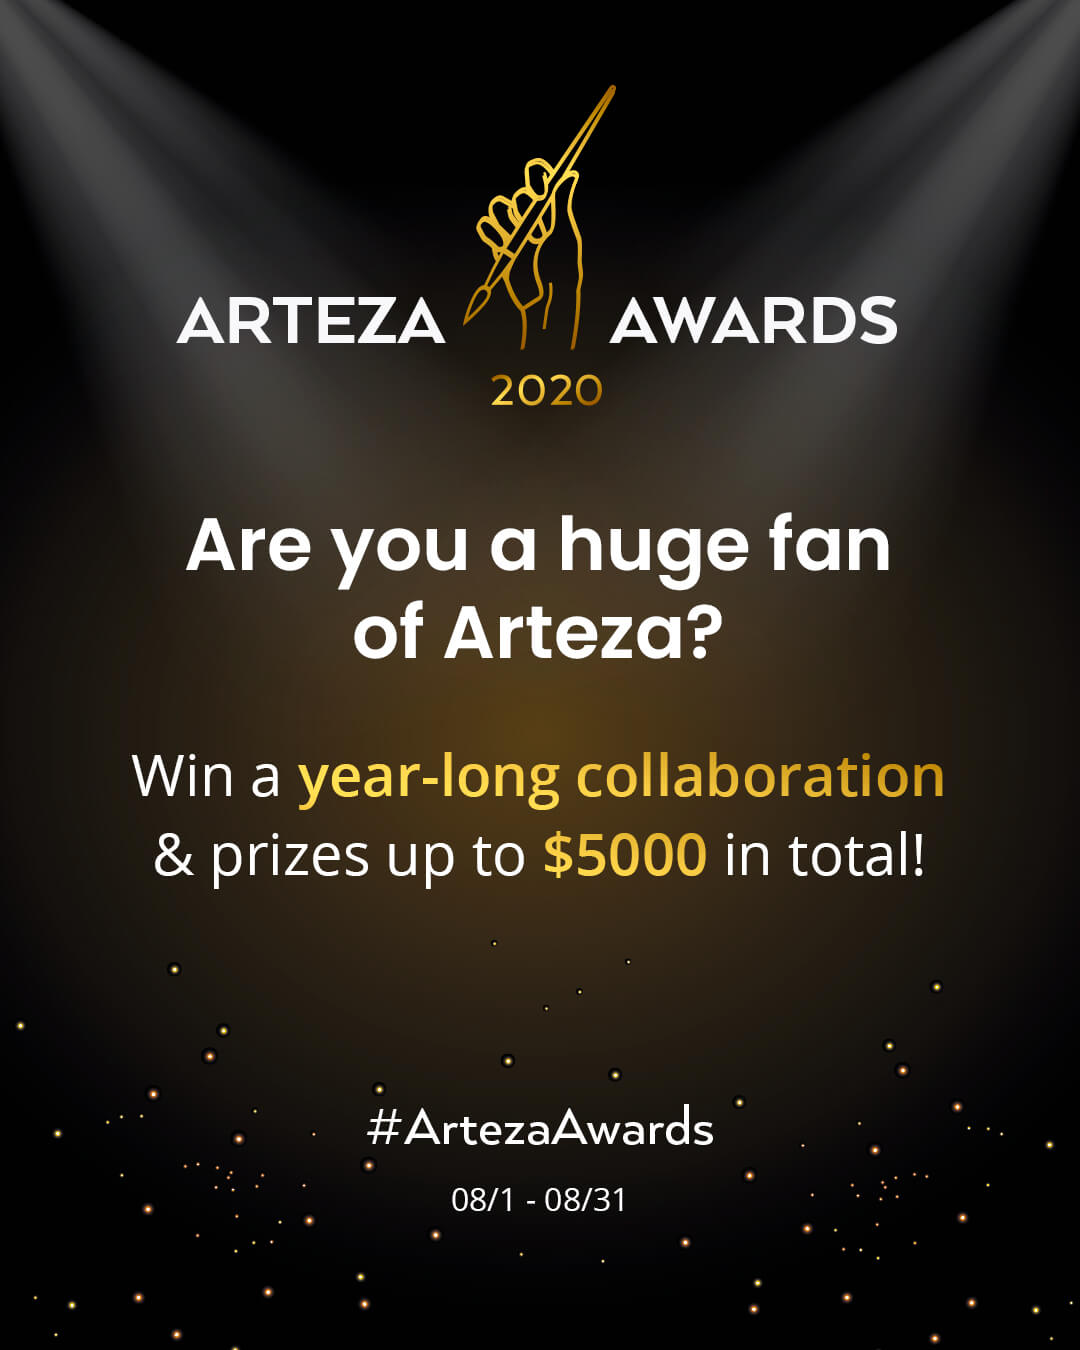 Arteza Awards 2020